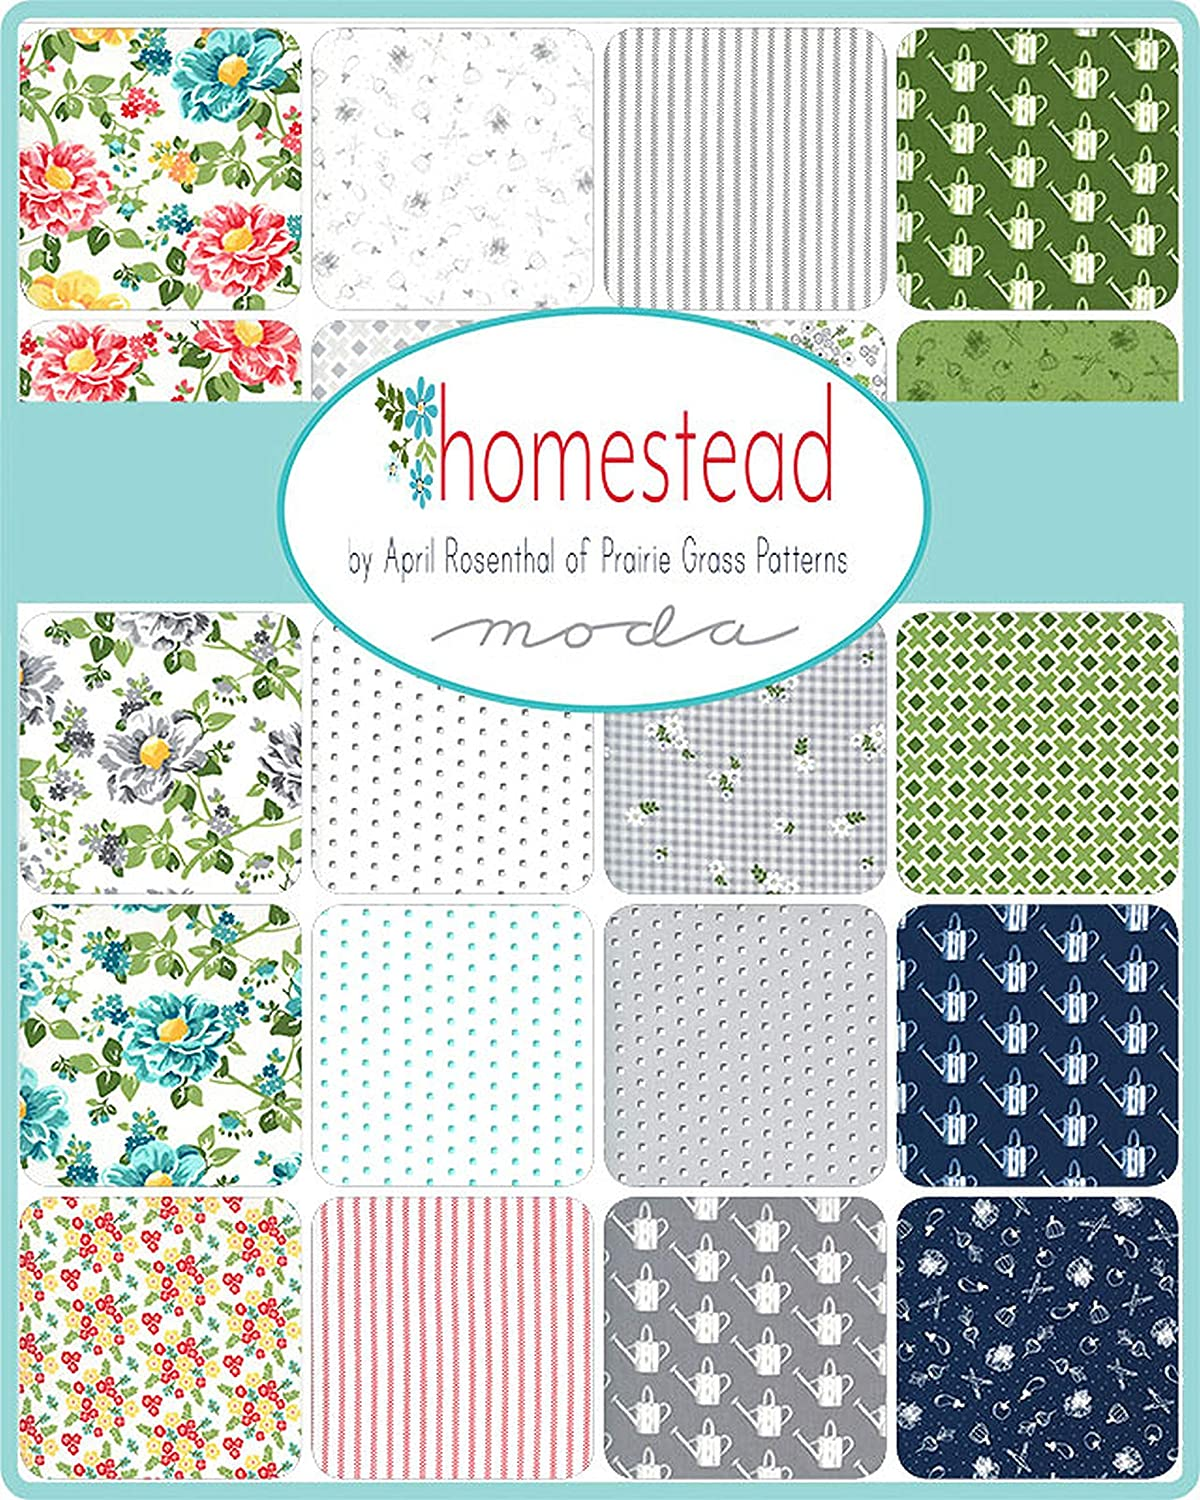 Homestead Layer Cake 42-10 Precut Fabric Quilt Squares by April Rosenthal of Prairie Grass Patterns